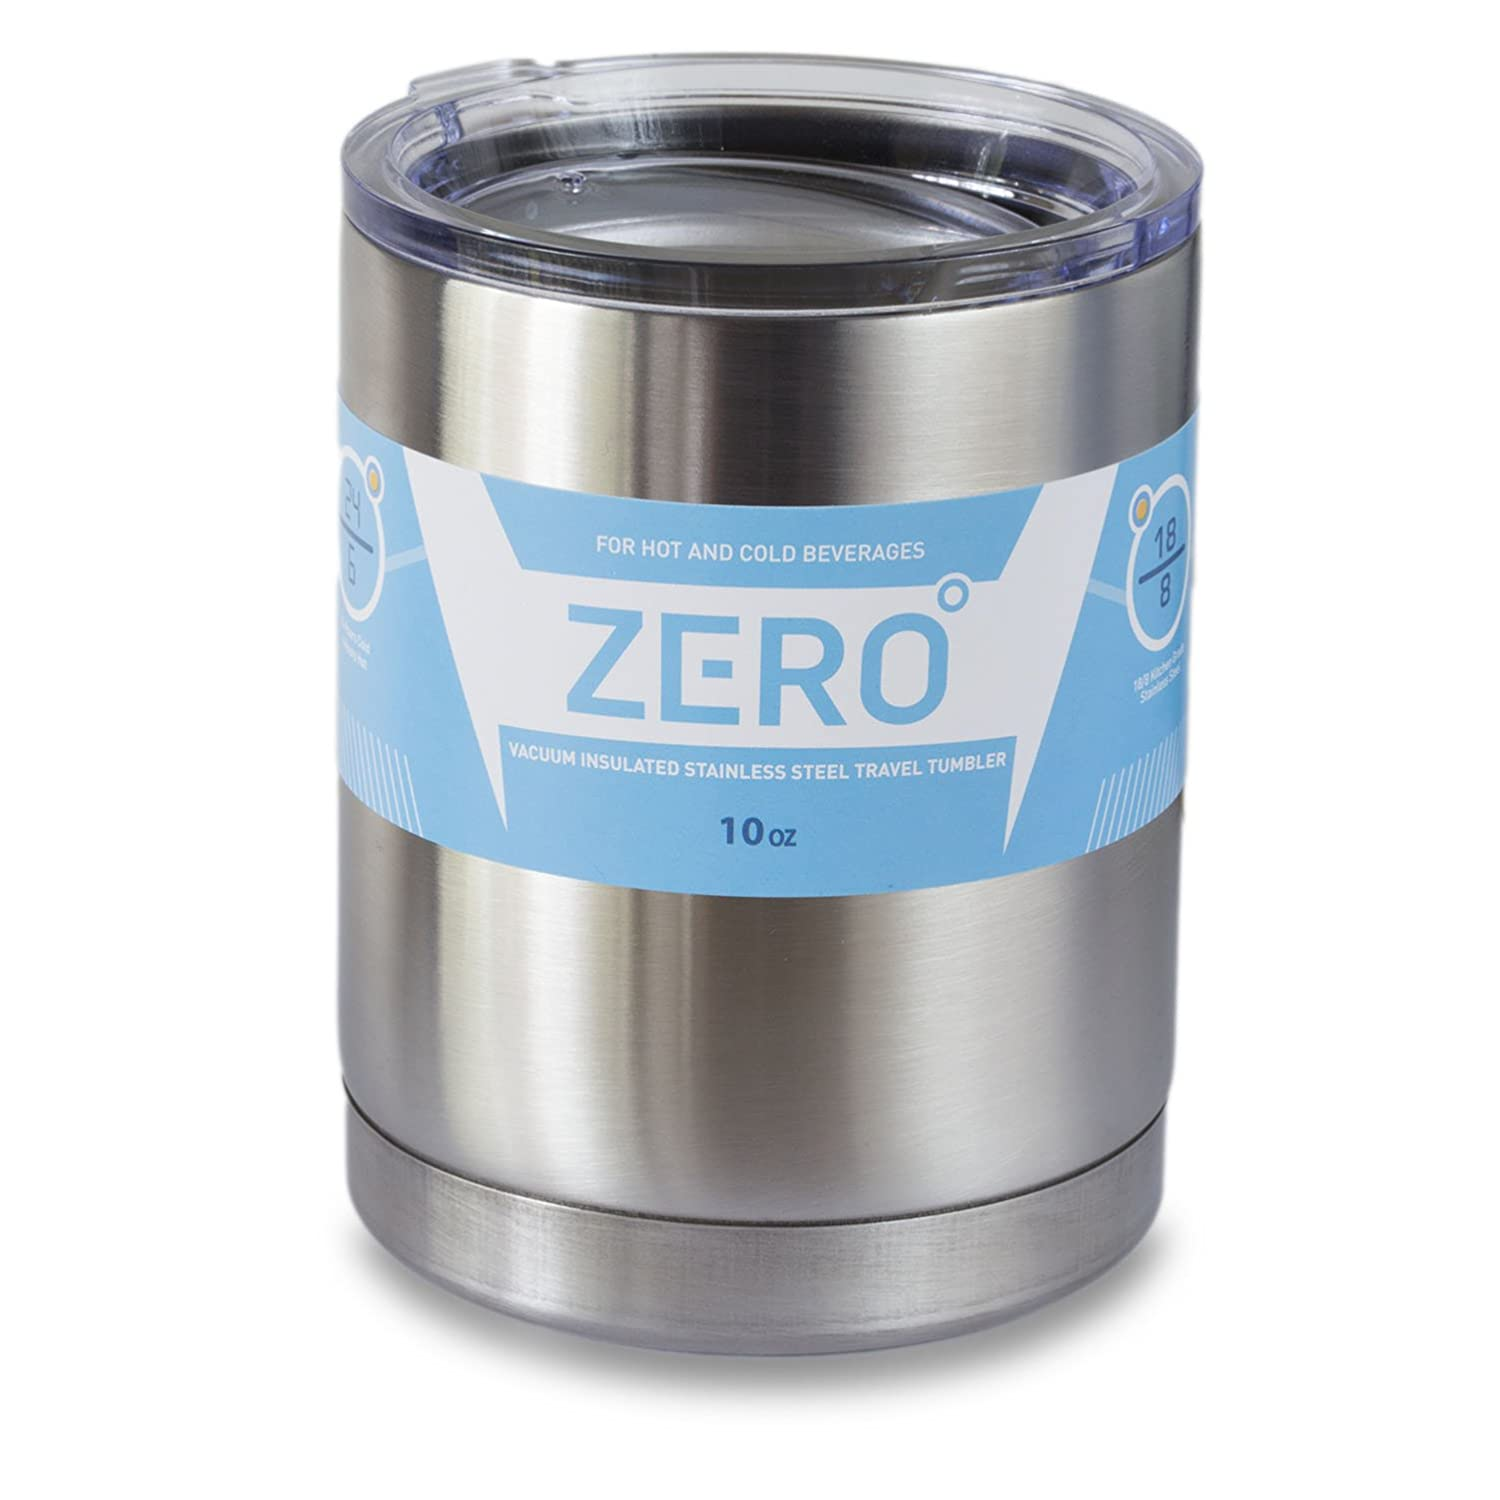 69374b86e8a Stainless Steel Tumbler with Lid, Double Wall Vacuum Insulated Travel Mug,  Perfect Size for a Cup of Coffee, by Zero Degree (10 oz)